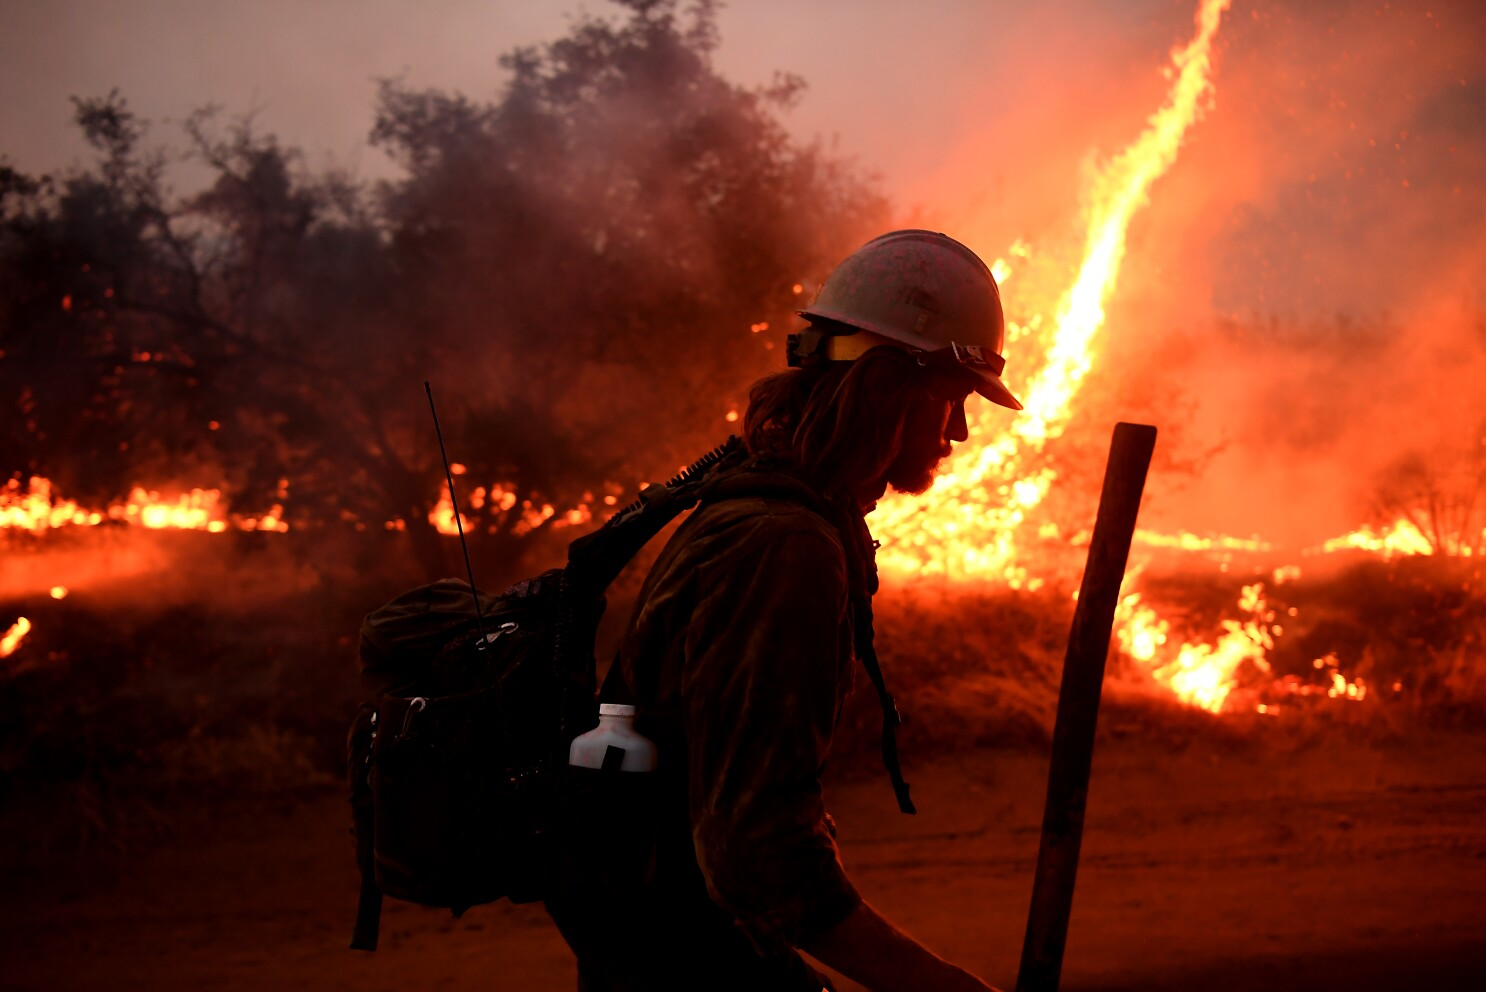 Aggressive winds feared as California battles biggest wildfire season - Los  Angeles Times